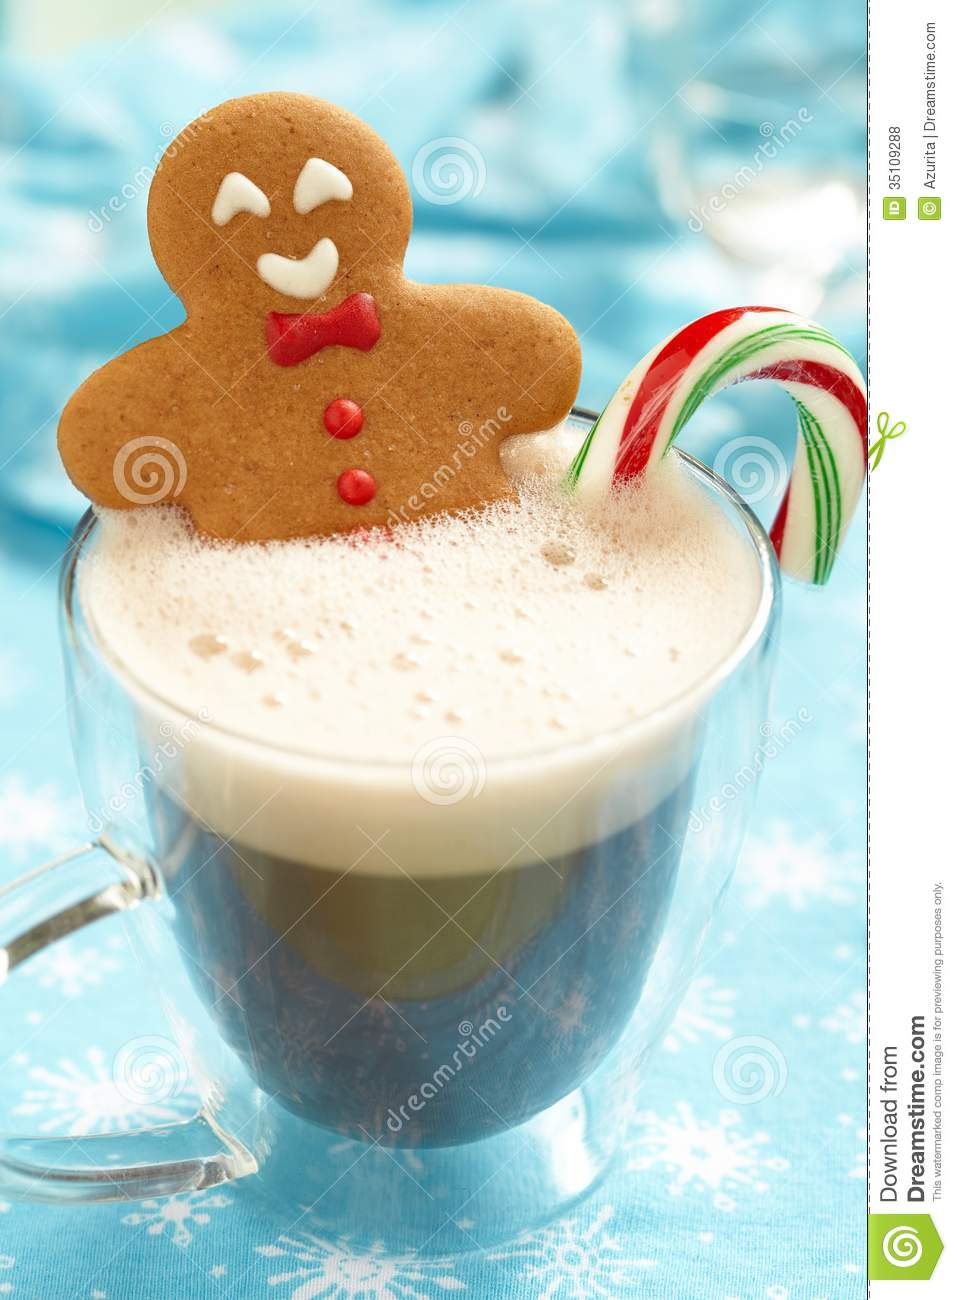 Gingerbread Man In Hot Chocolate Stock Photo Image 35109288